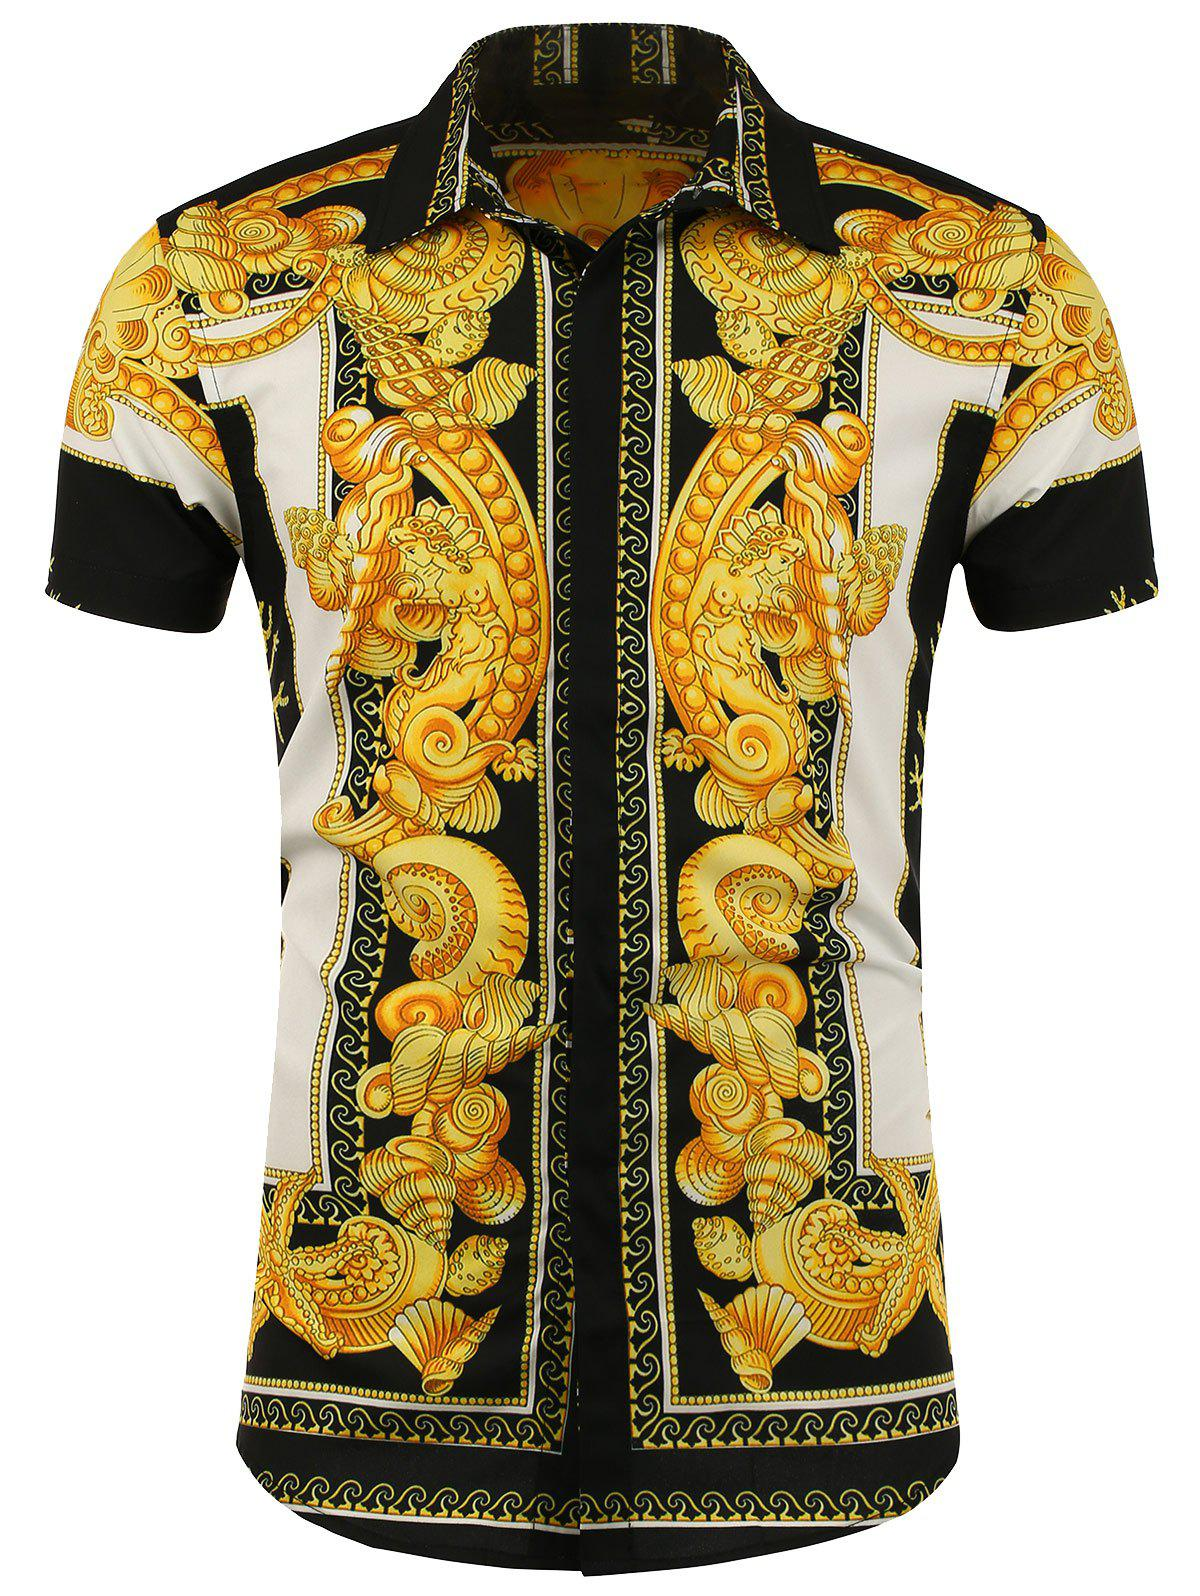 Button Up Patterned Short Sleeve Shirt - WHITE / BLACK / YELLOW XL